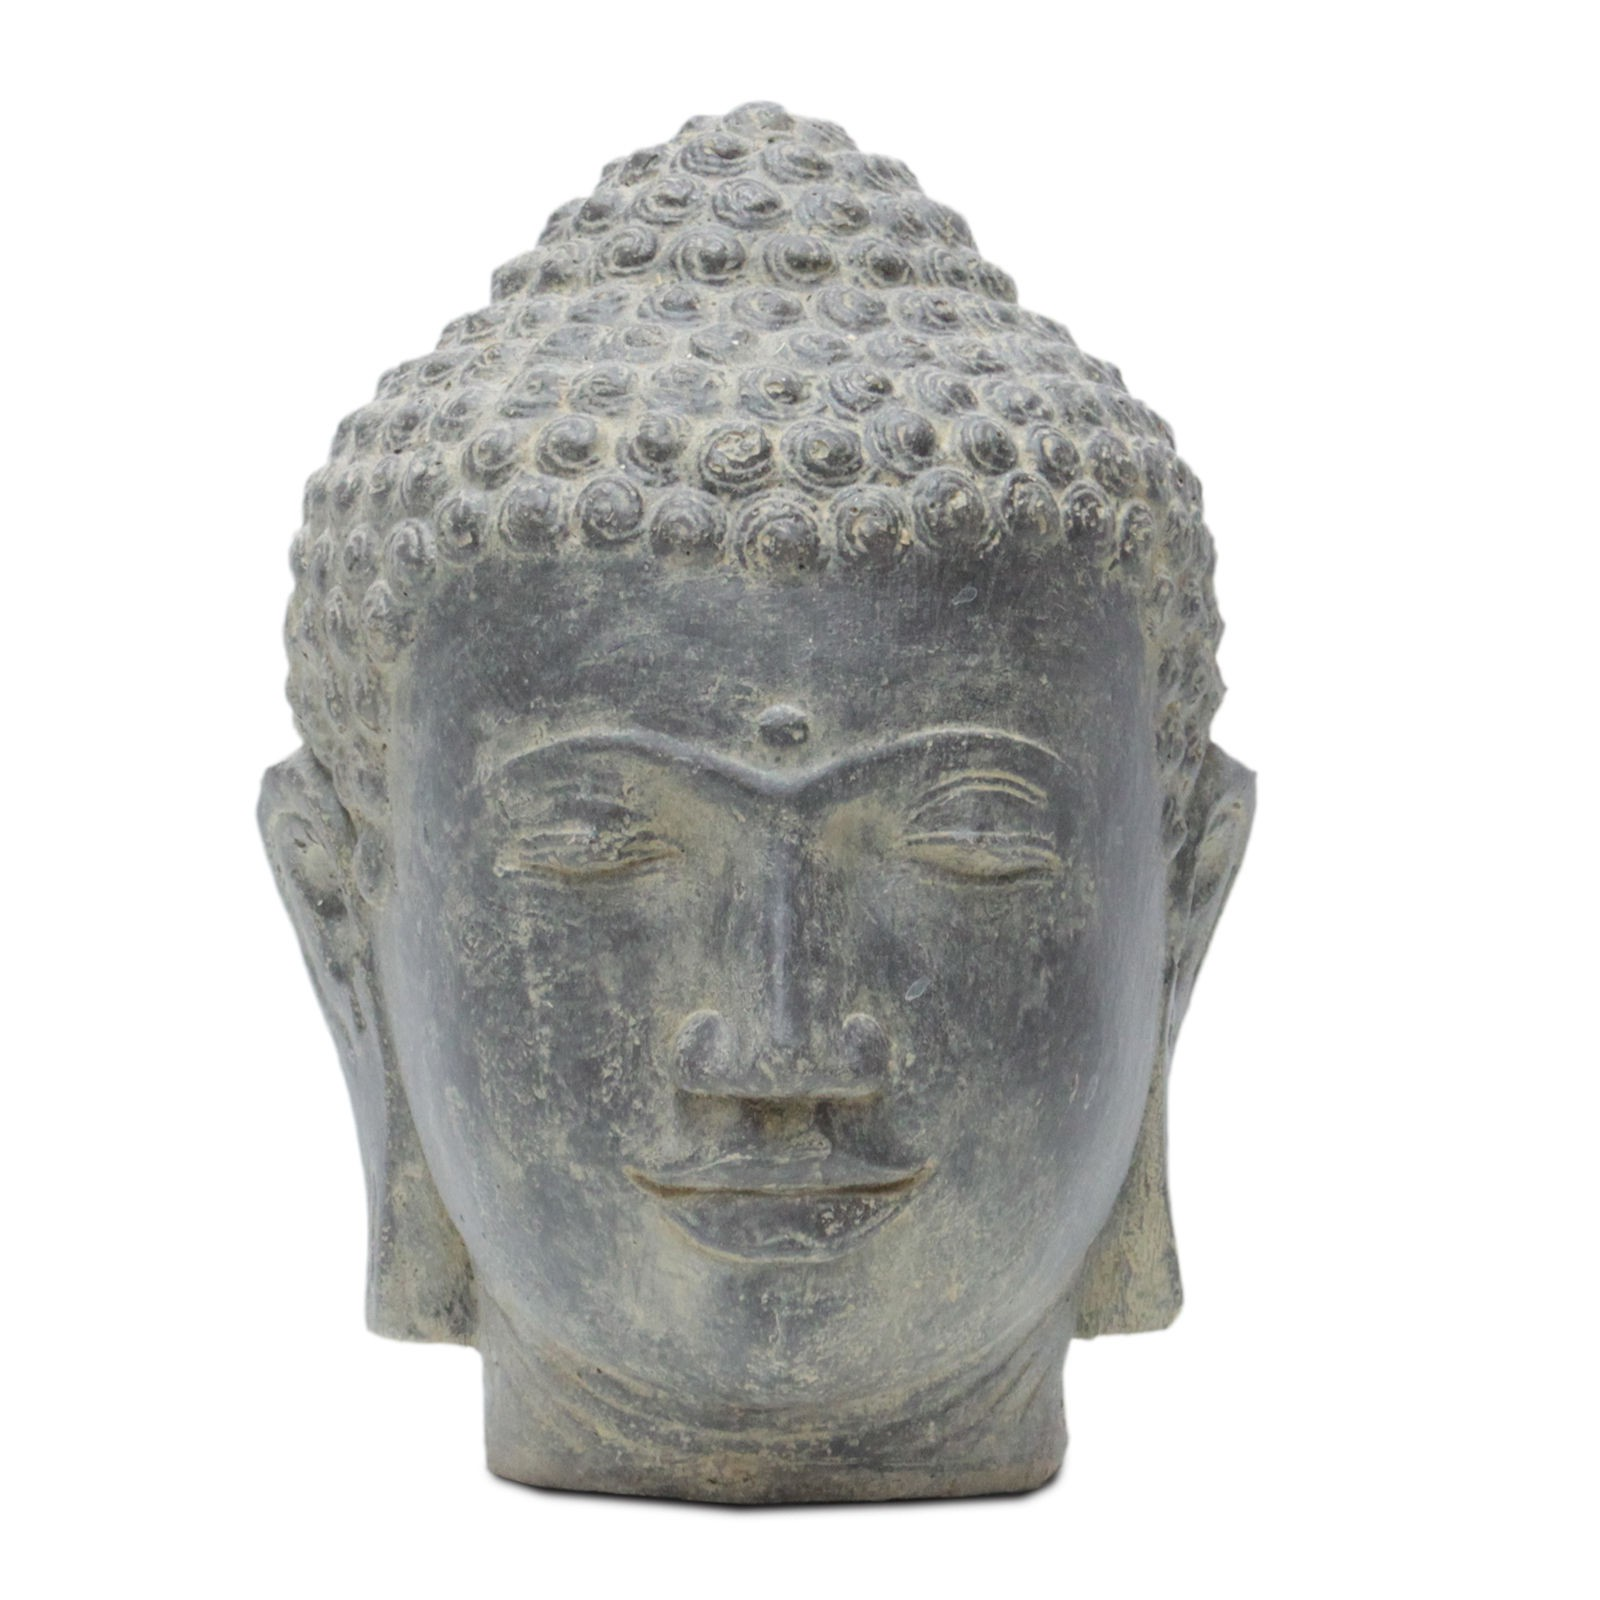 buddha kopf head steinfigur skulptur stein lavasand bali garten deko 33cm. Black Bedroom Furniture Sets. Home Design Ideas